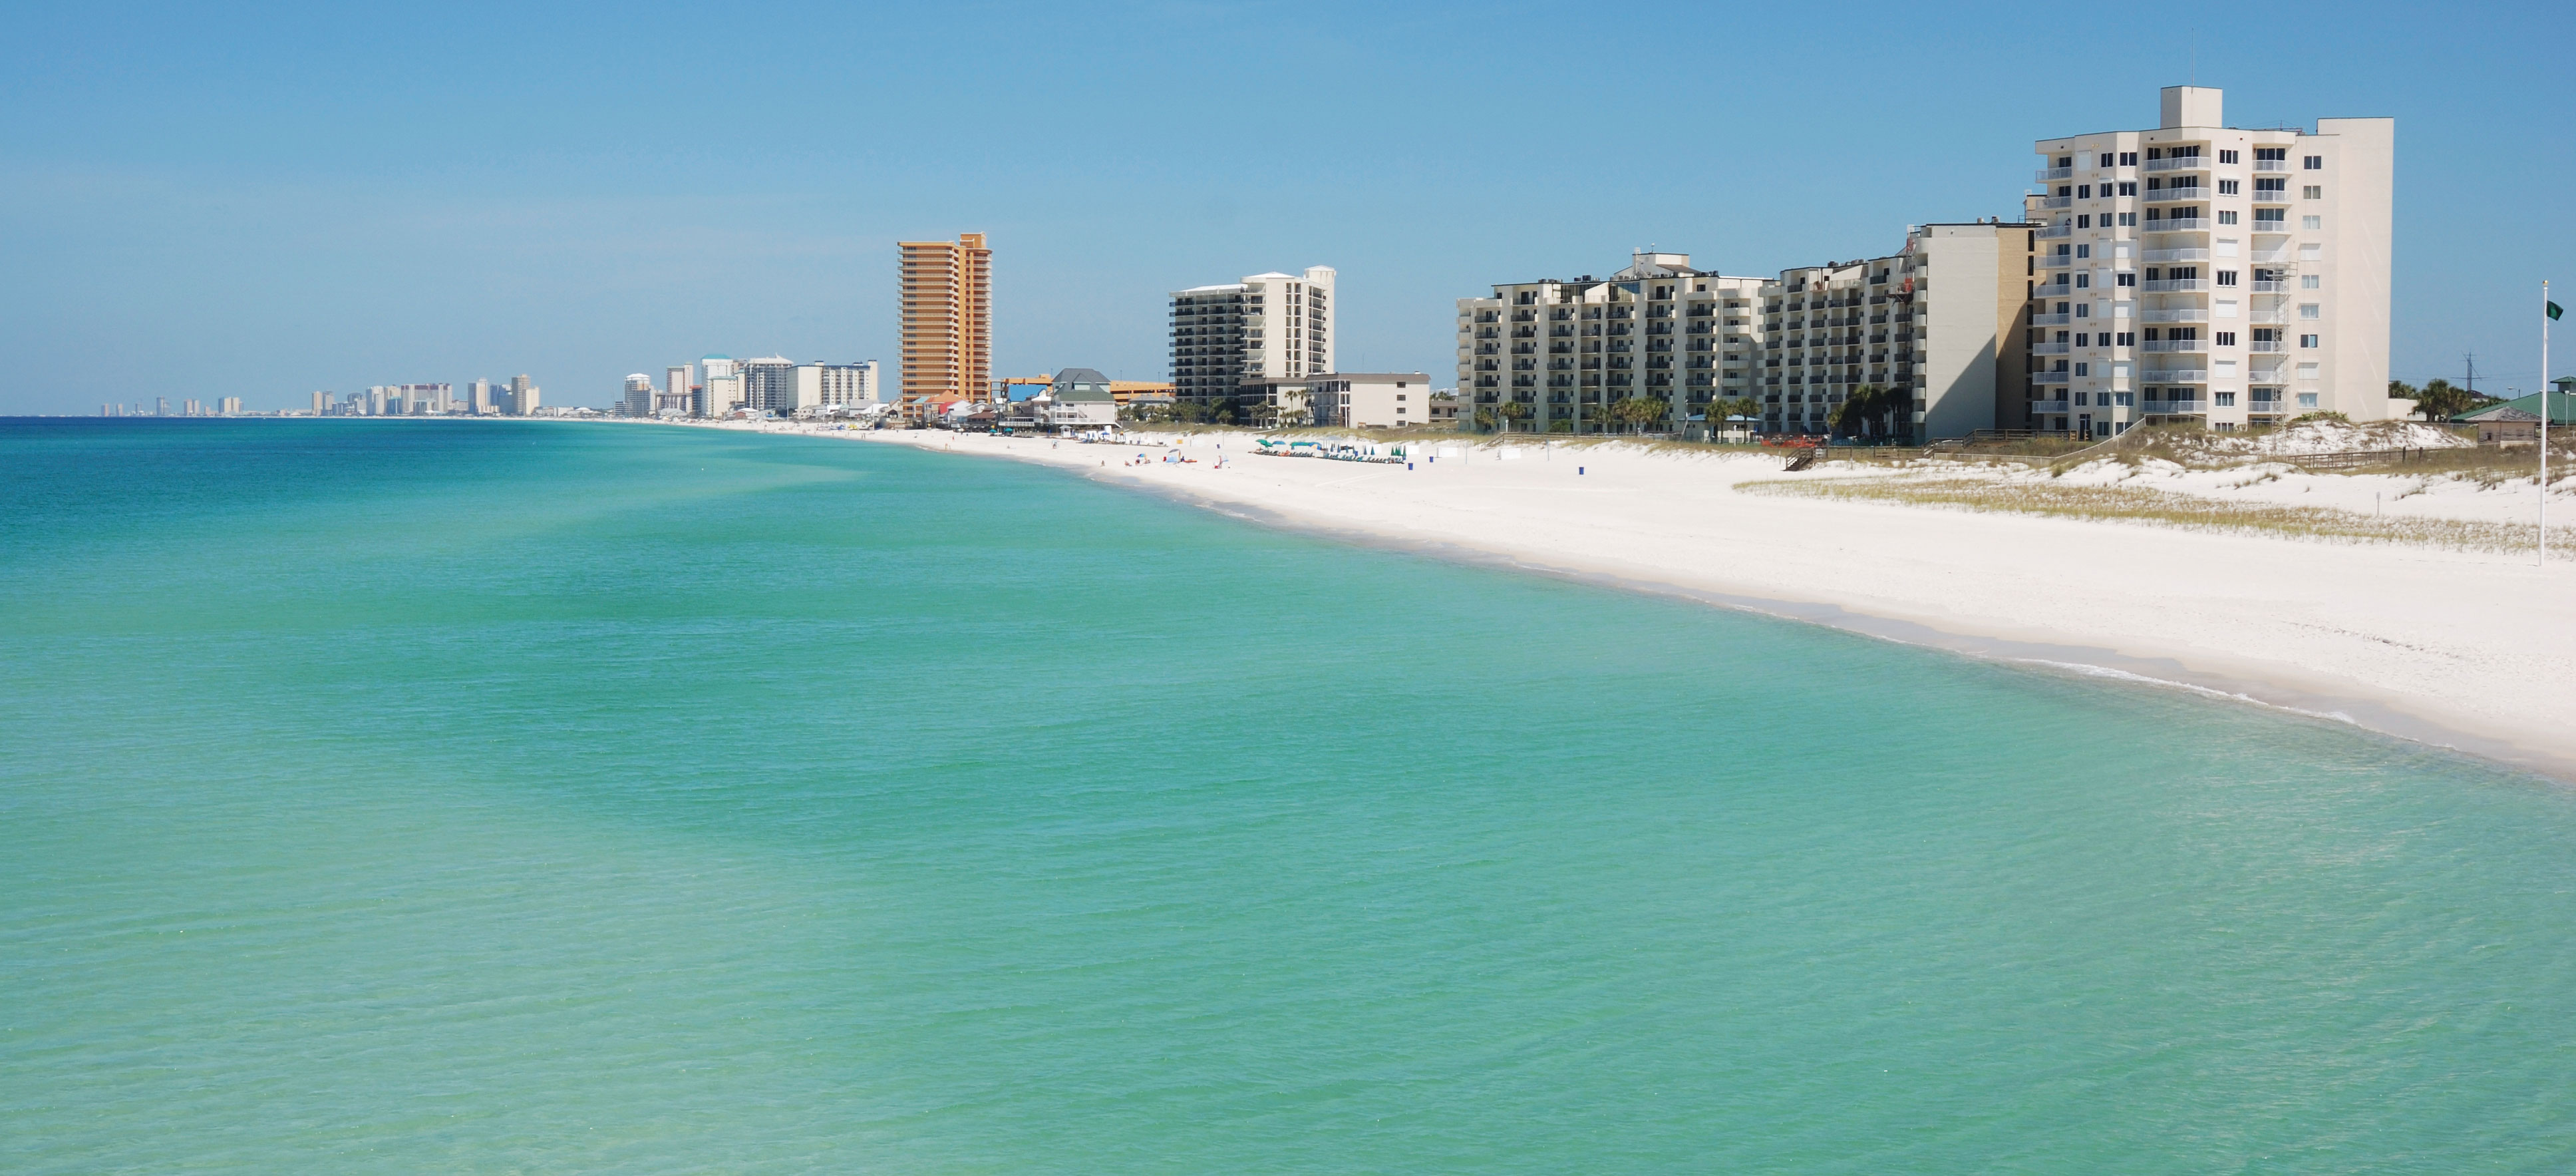 Panama City Beach Extended Stay « R & J Tours